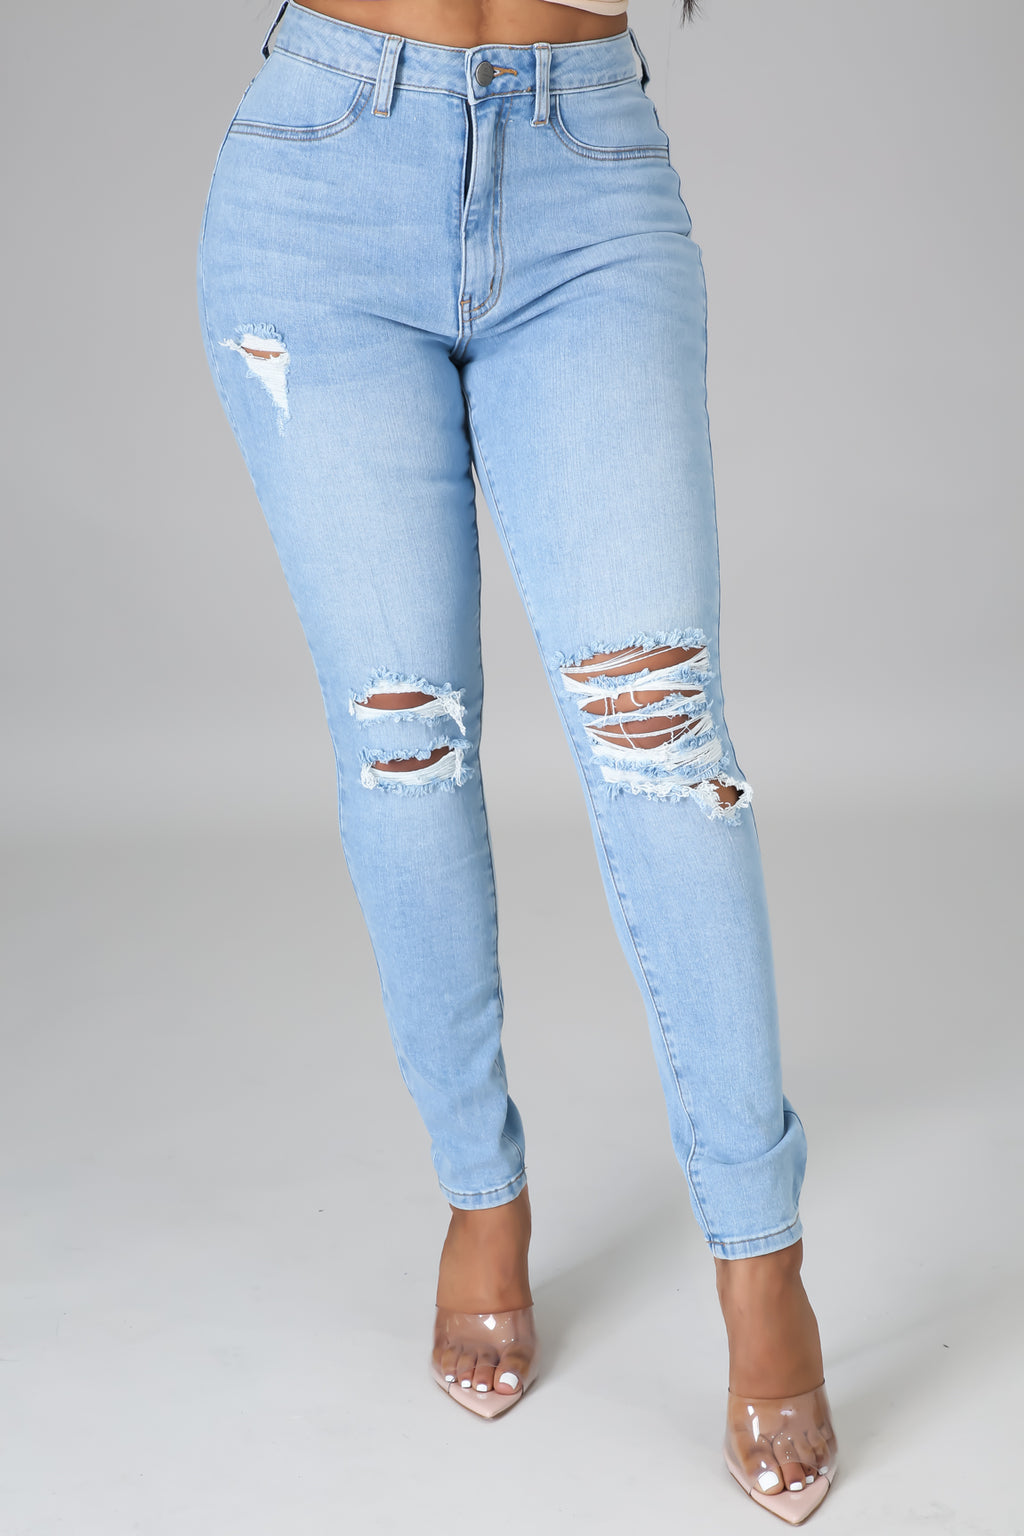 The Upgrade Jeans